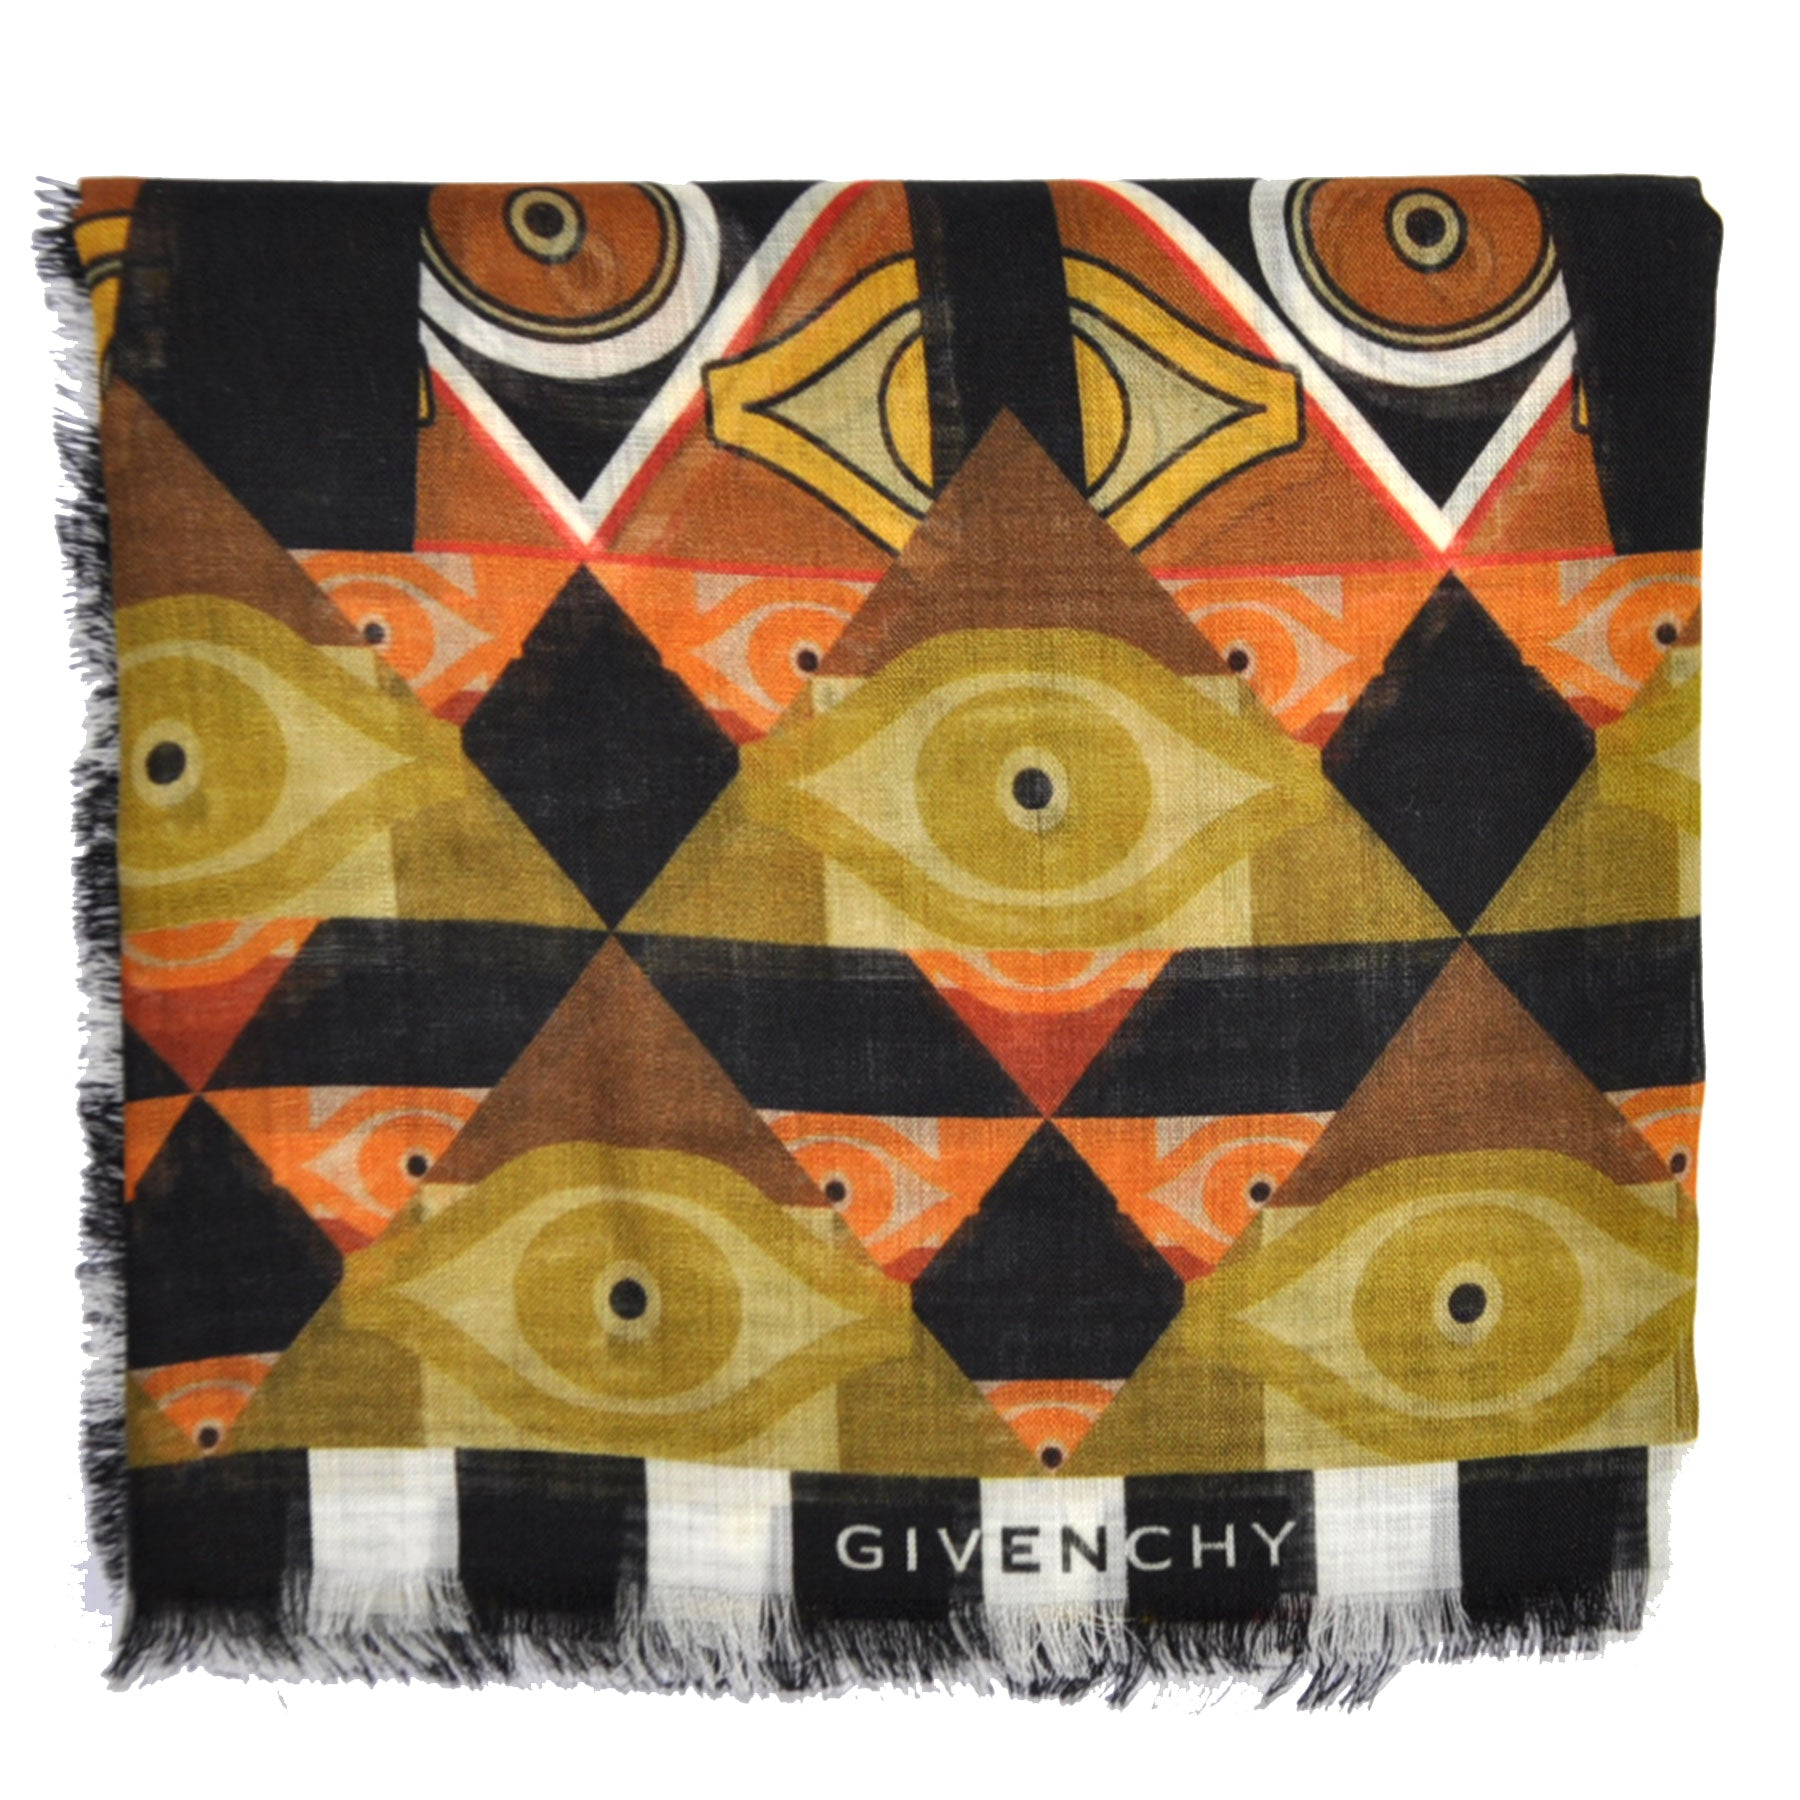 Givenchy Scarf Olive Mustard Brown Black Wool Shawl